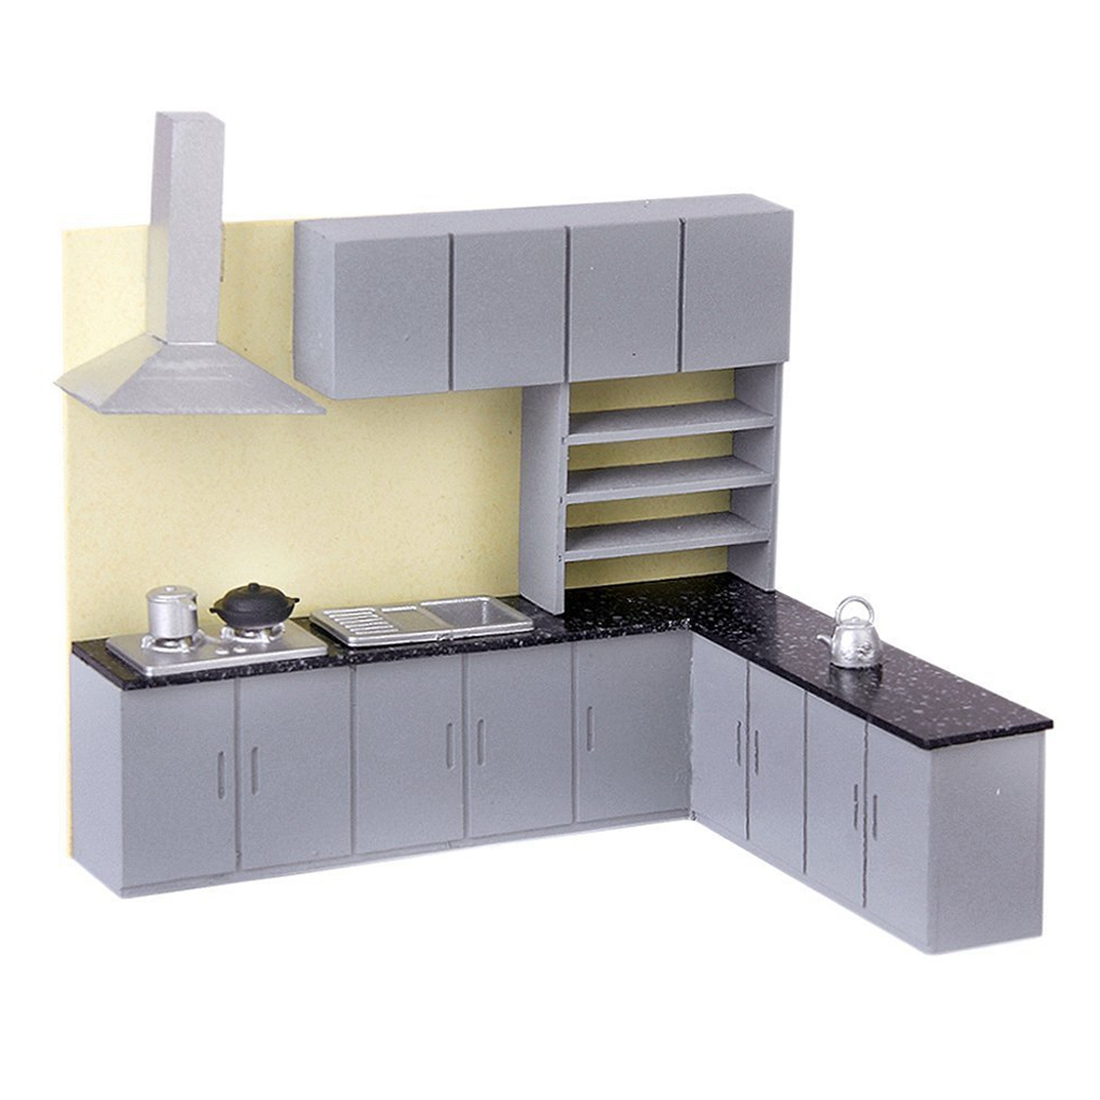 US $9.74 31% OFF|Simulation Kitchen Cabinet Set Model Kit Furniture 1:25  Dollhouse furniture-in Furniture Toys from Toys & Hobbies on AliExpress